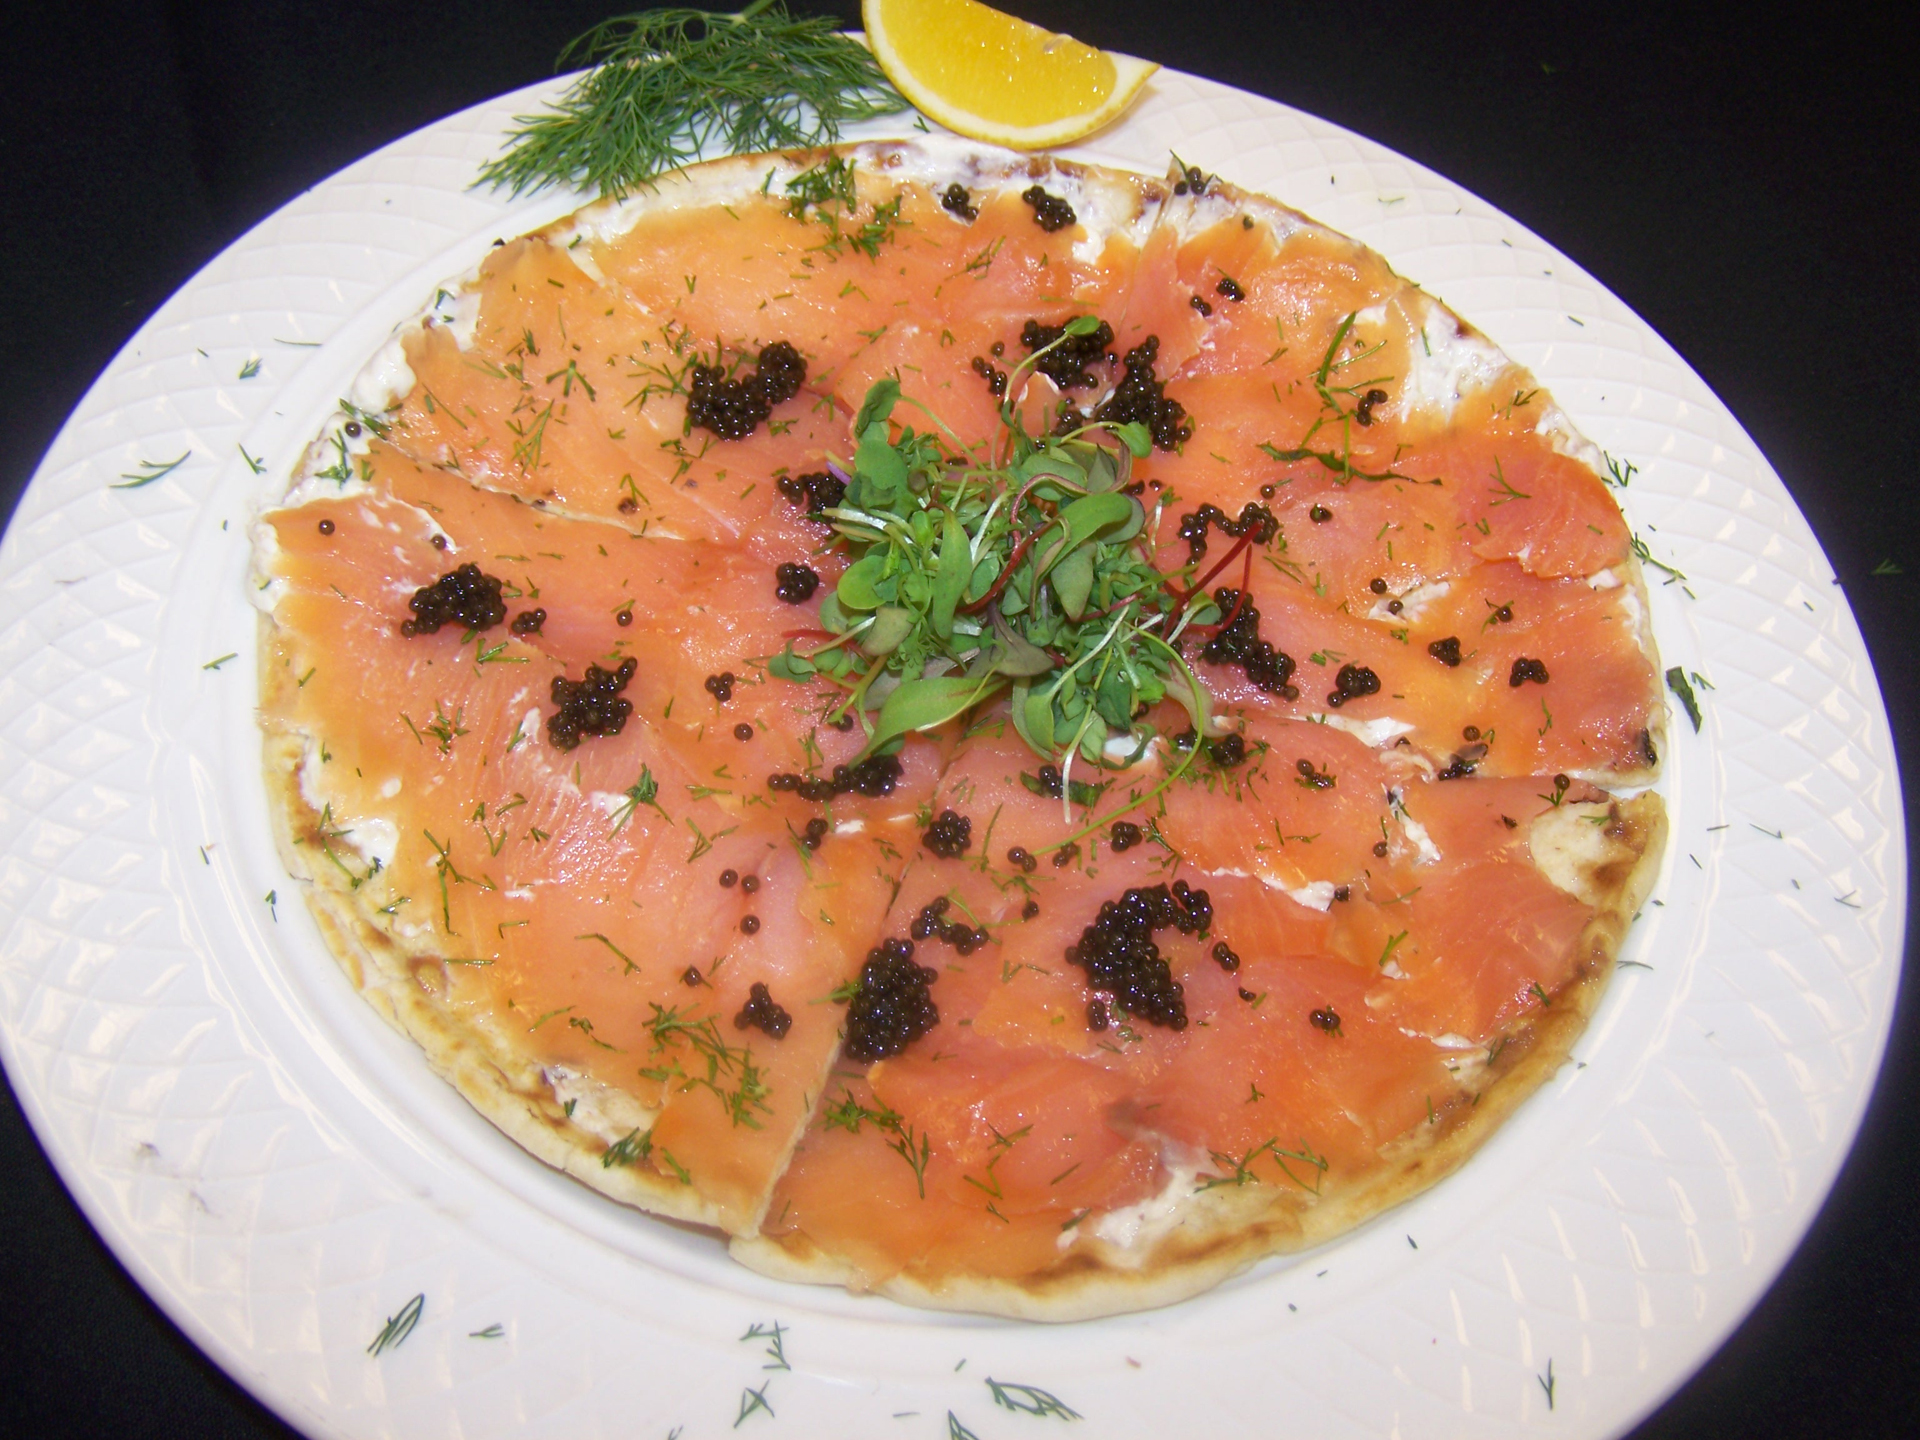 Smoked salmon flatbread appetizer